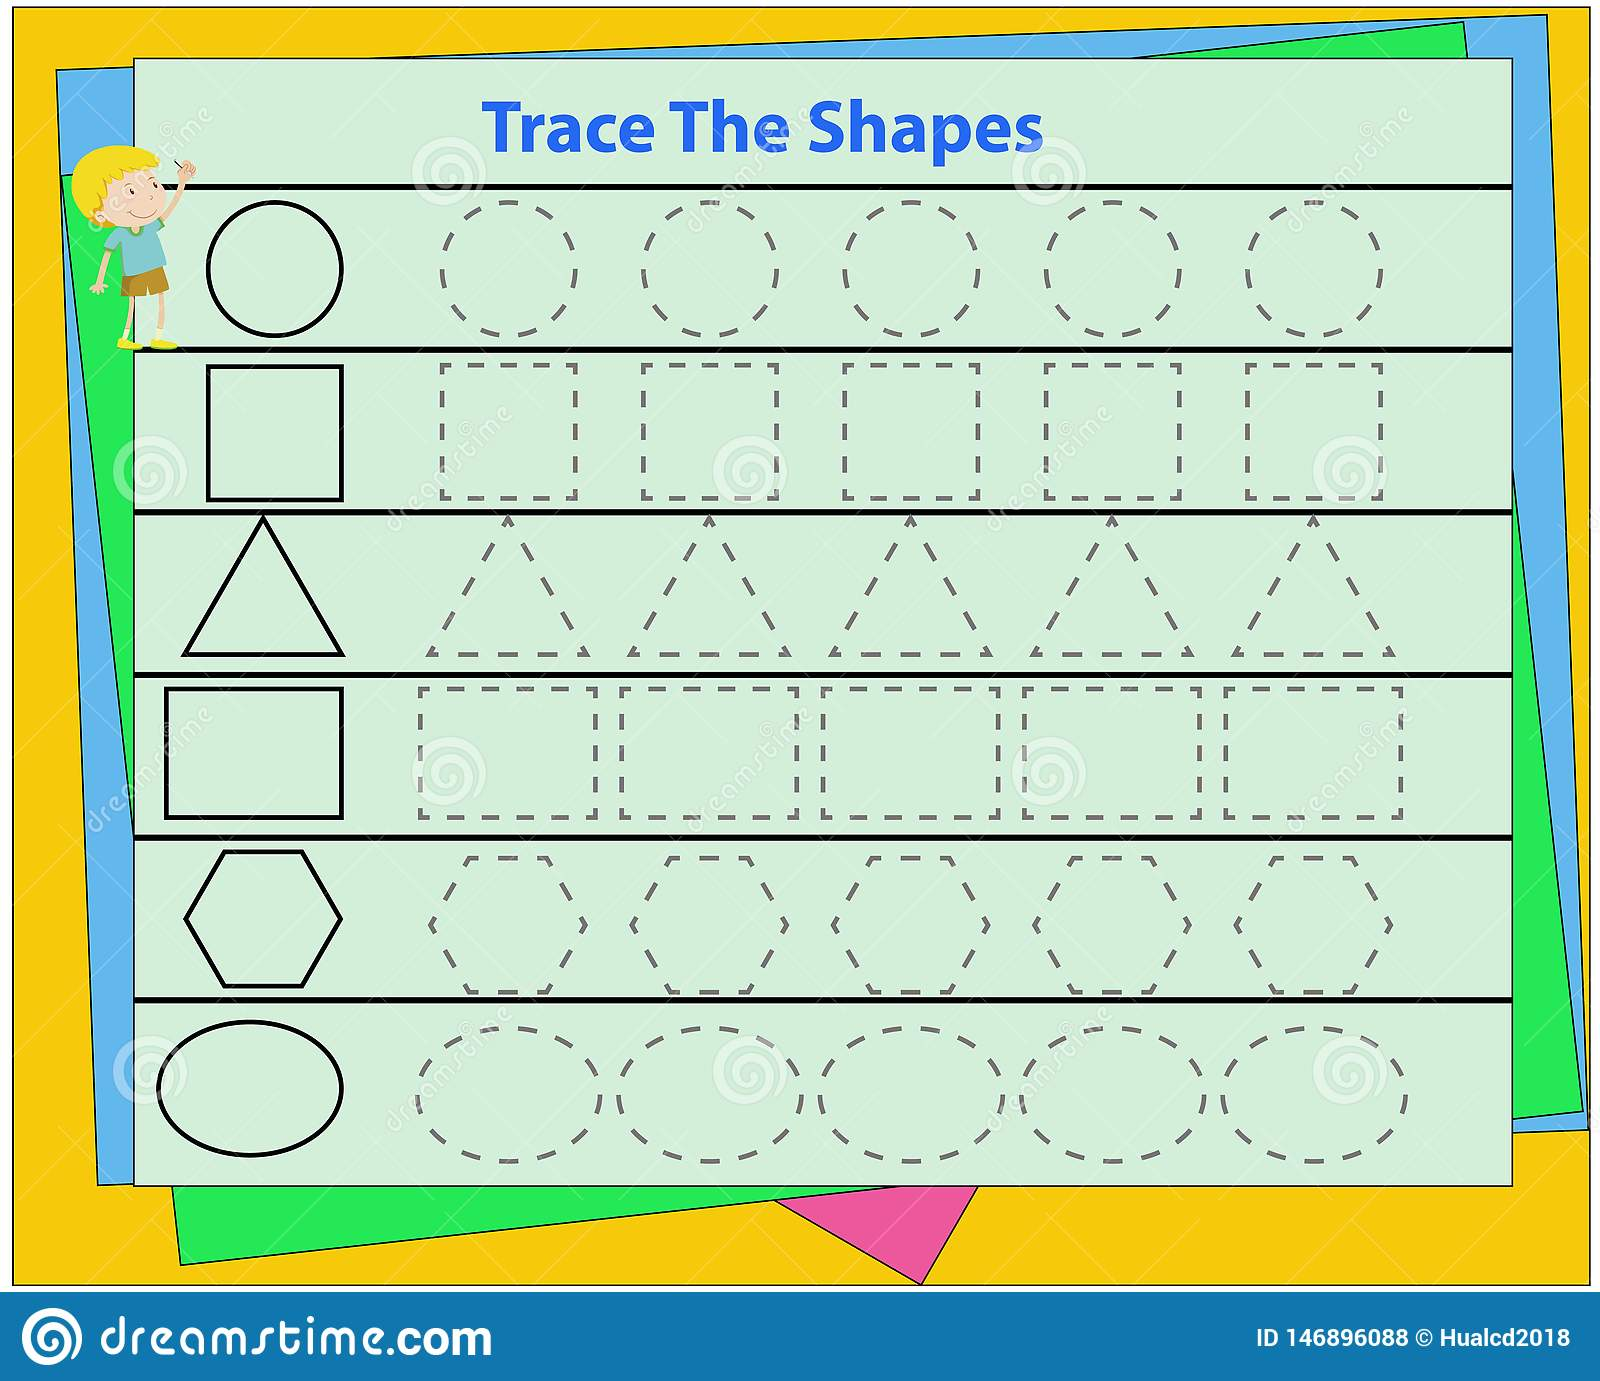 Learn Shapes And Geometric Figures Preschool Or Kindergarten Worksheet Vector Illustration